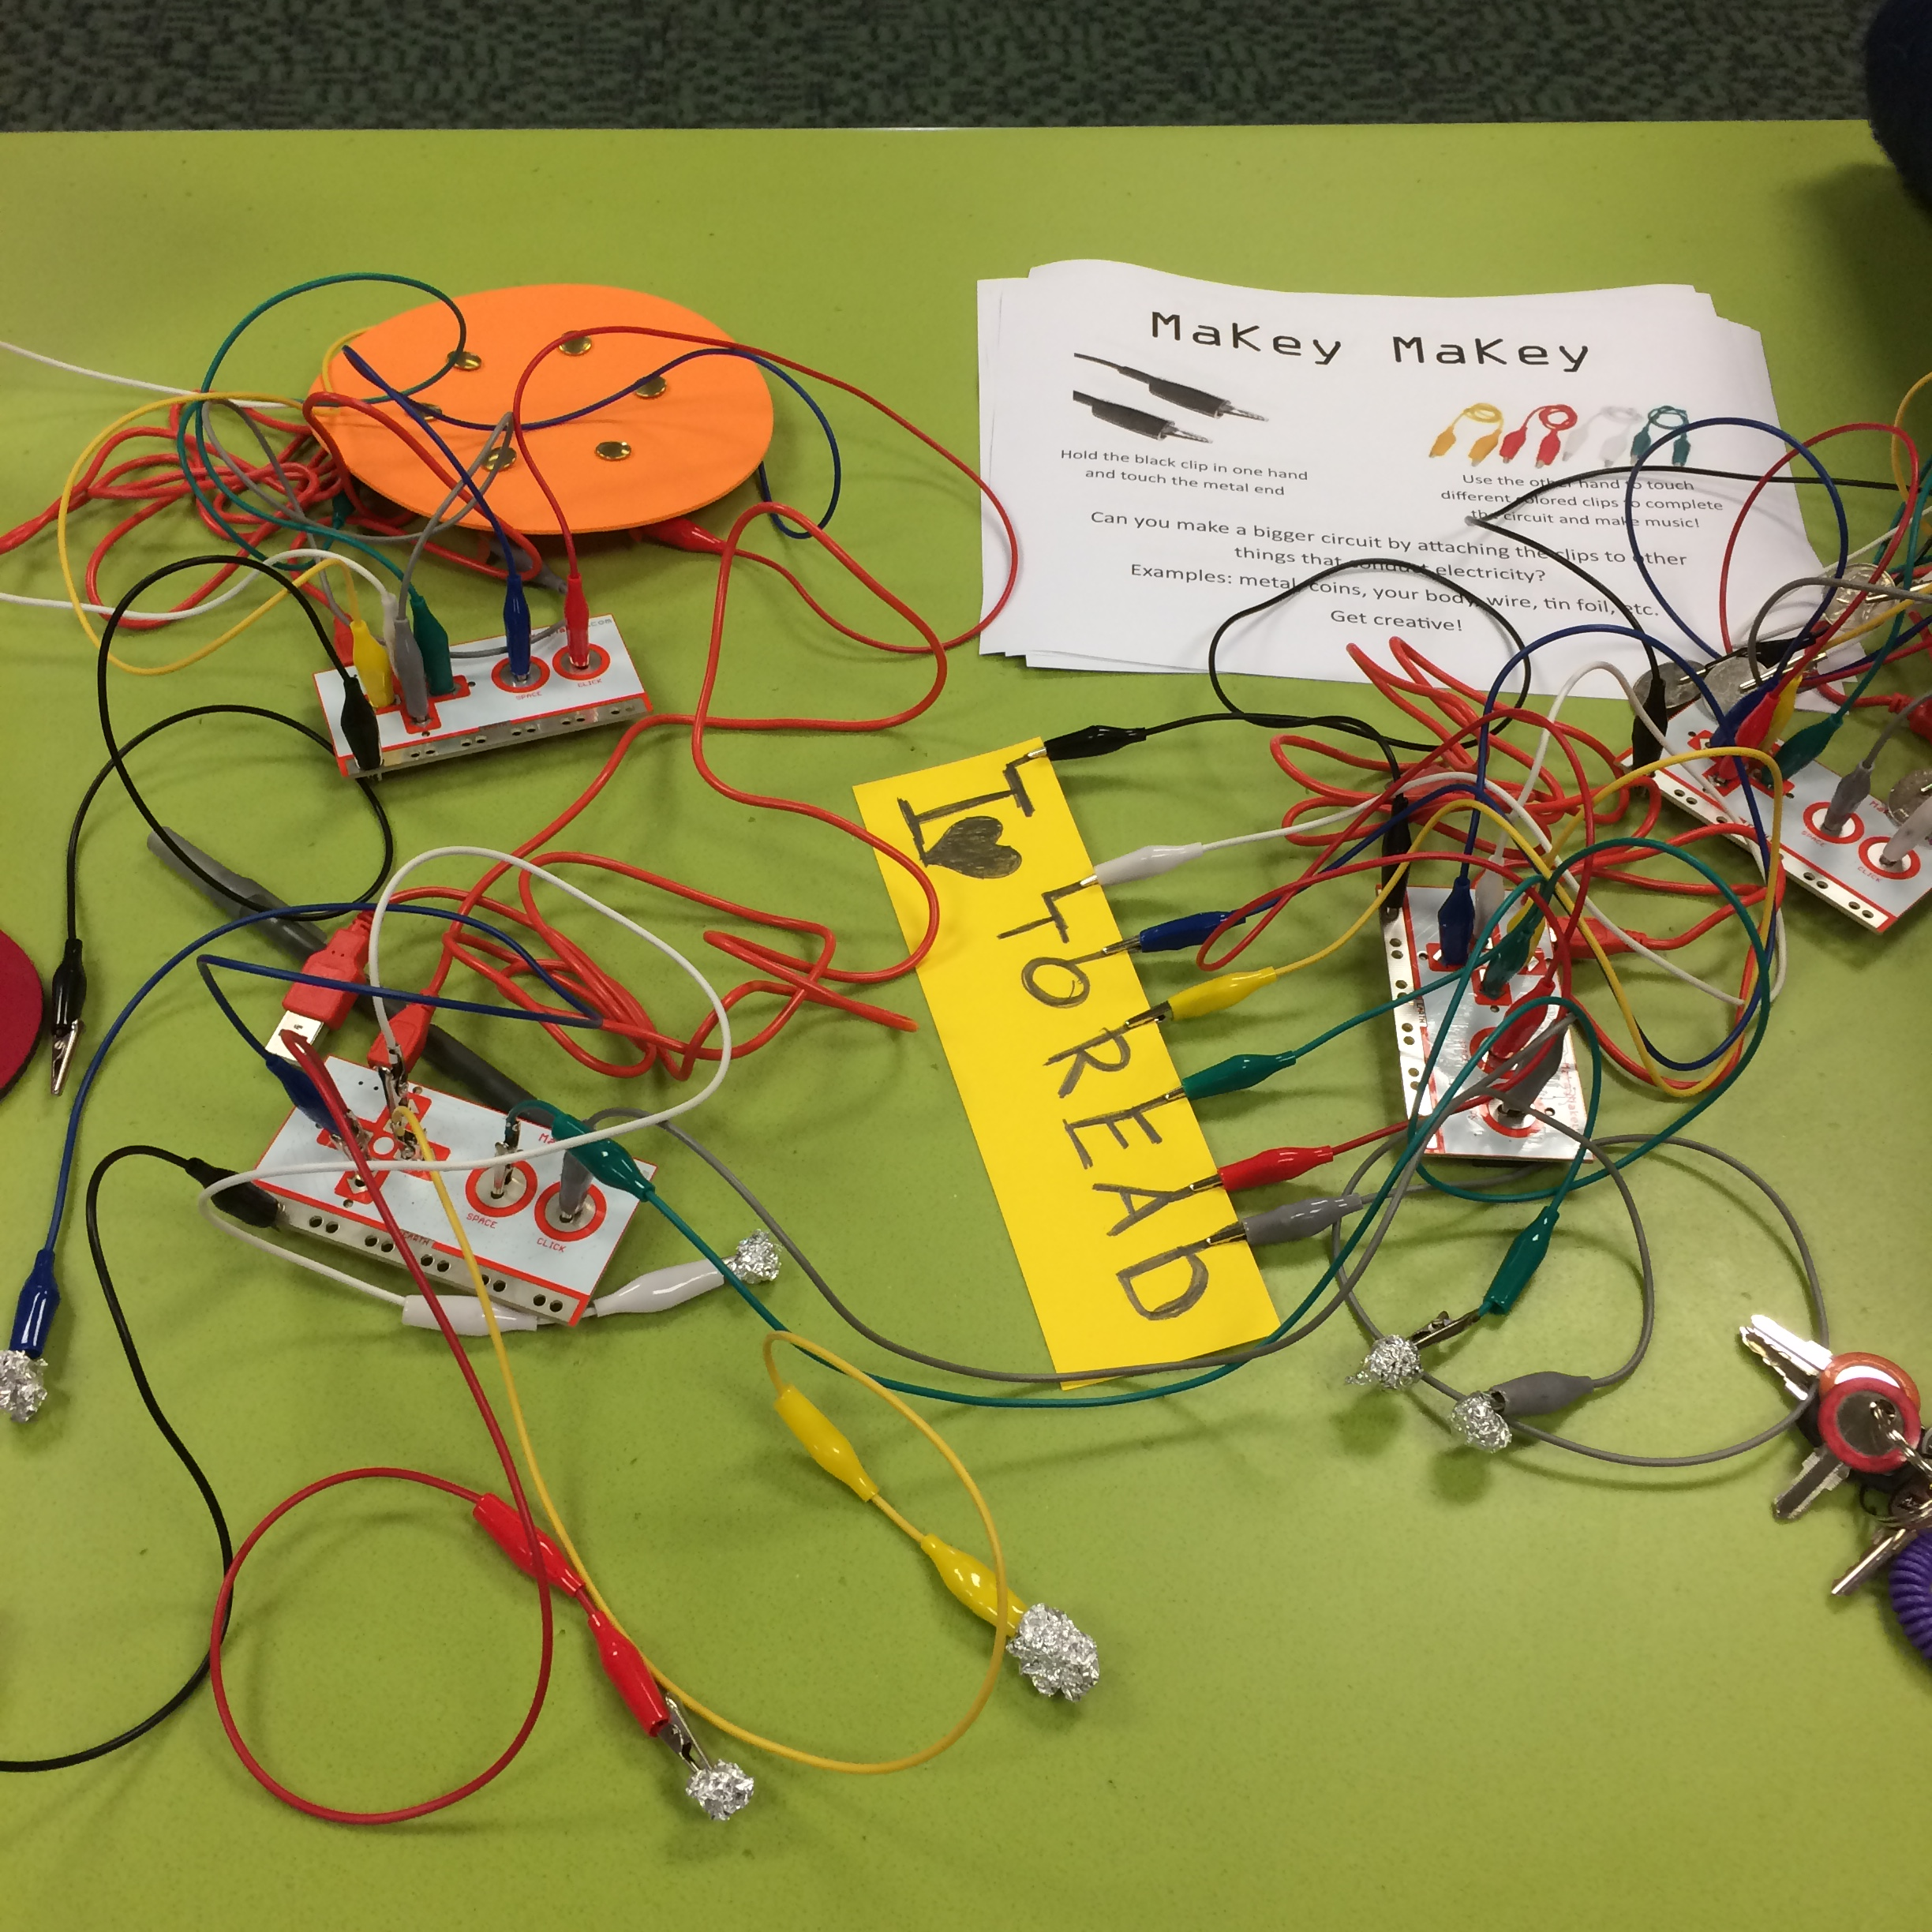 Maker Monday: Circuits | Let the wild rumpus start